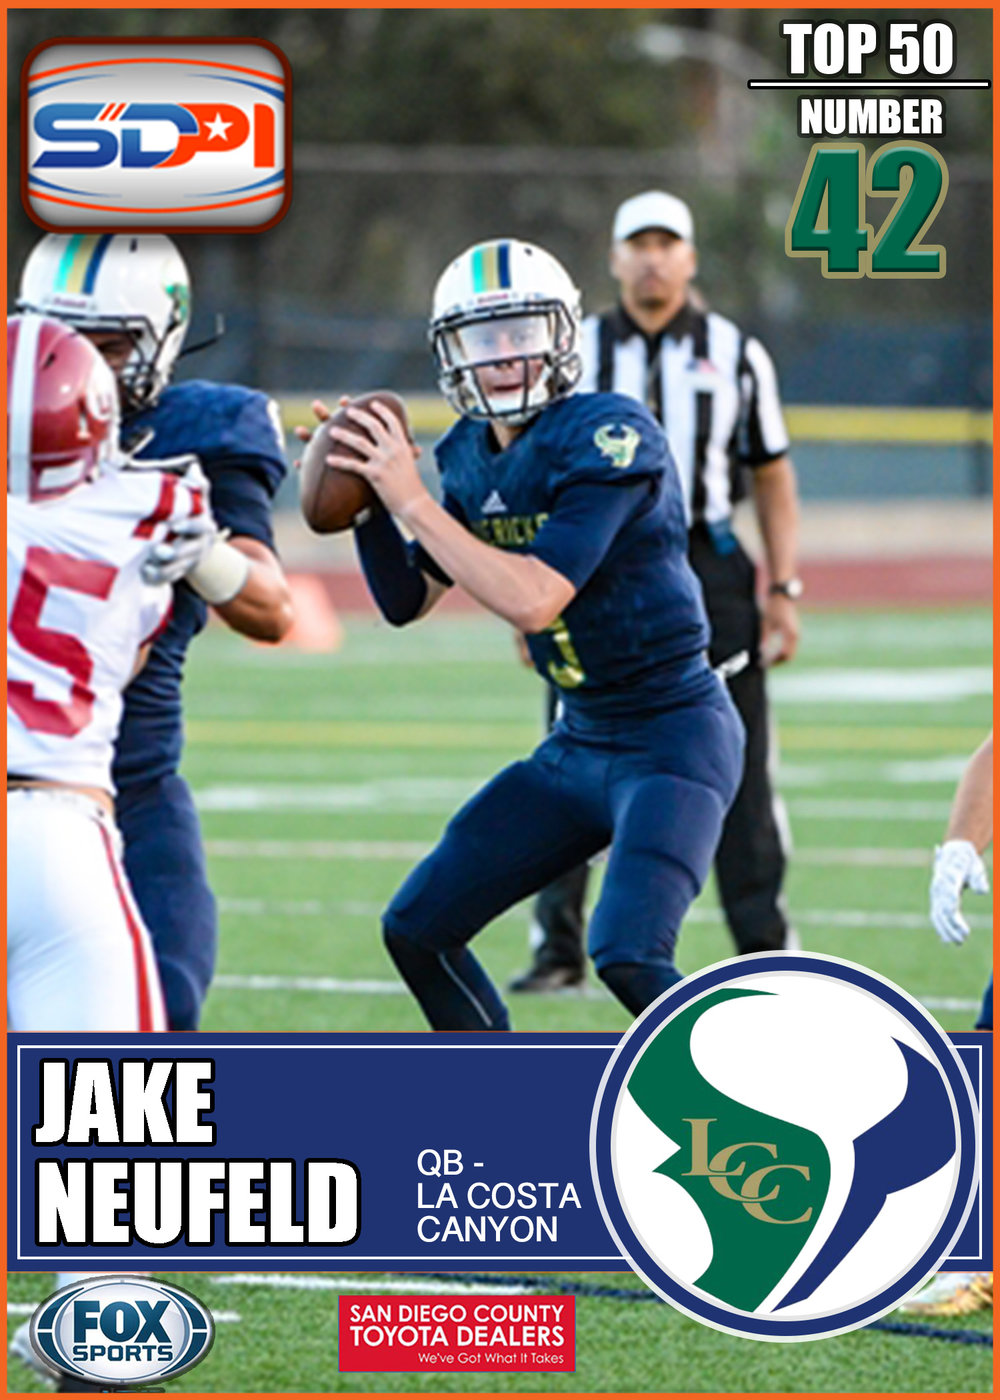 - Totaling almost 1500 yards last season in his first full season in charge of the Mavericks offense Neufeld showed that he has the tools to succeed. With a beefed up offense around him 2017 should be an marquee season for him.Click Here to see his highlights.